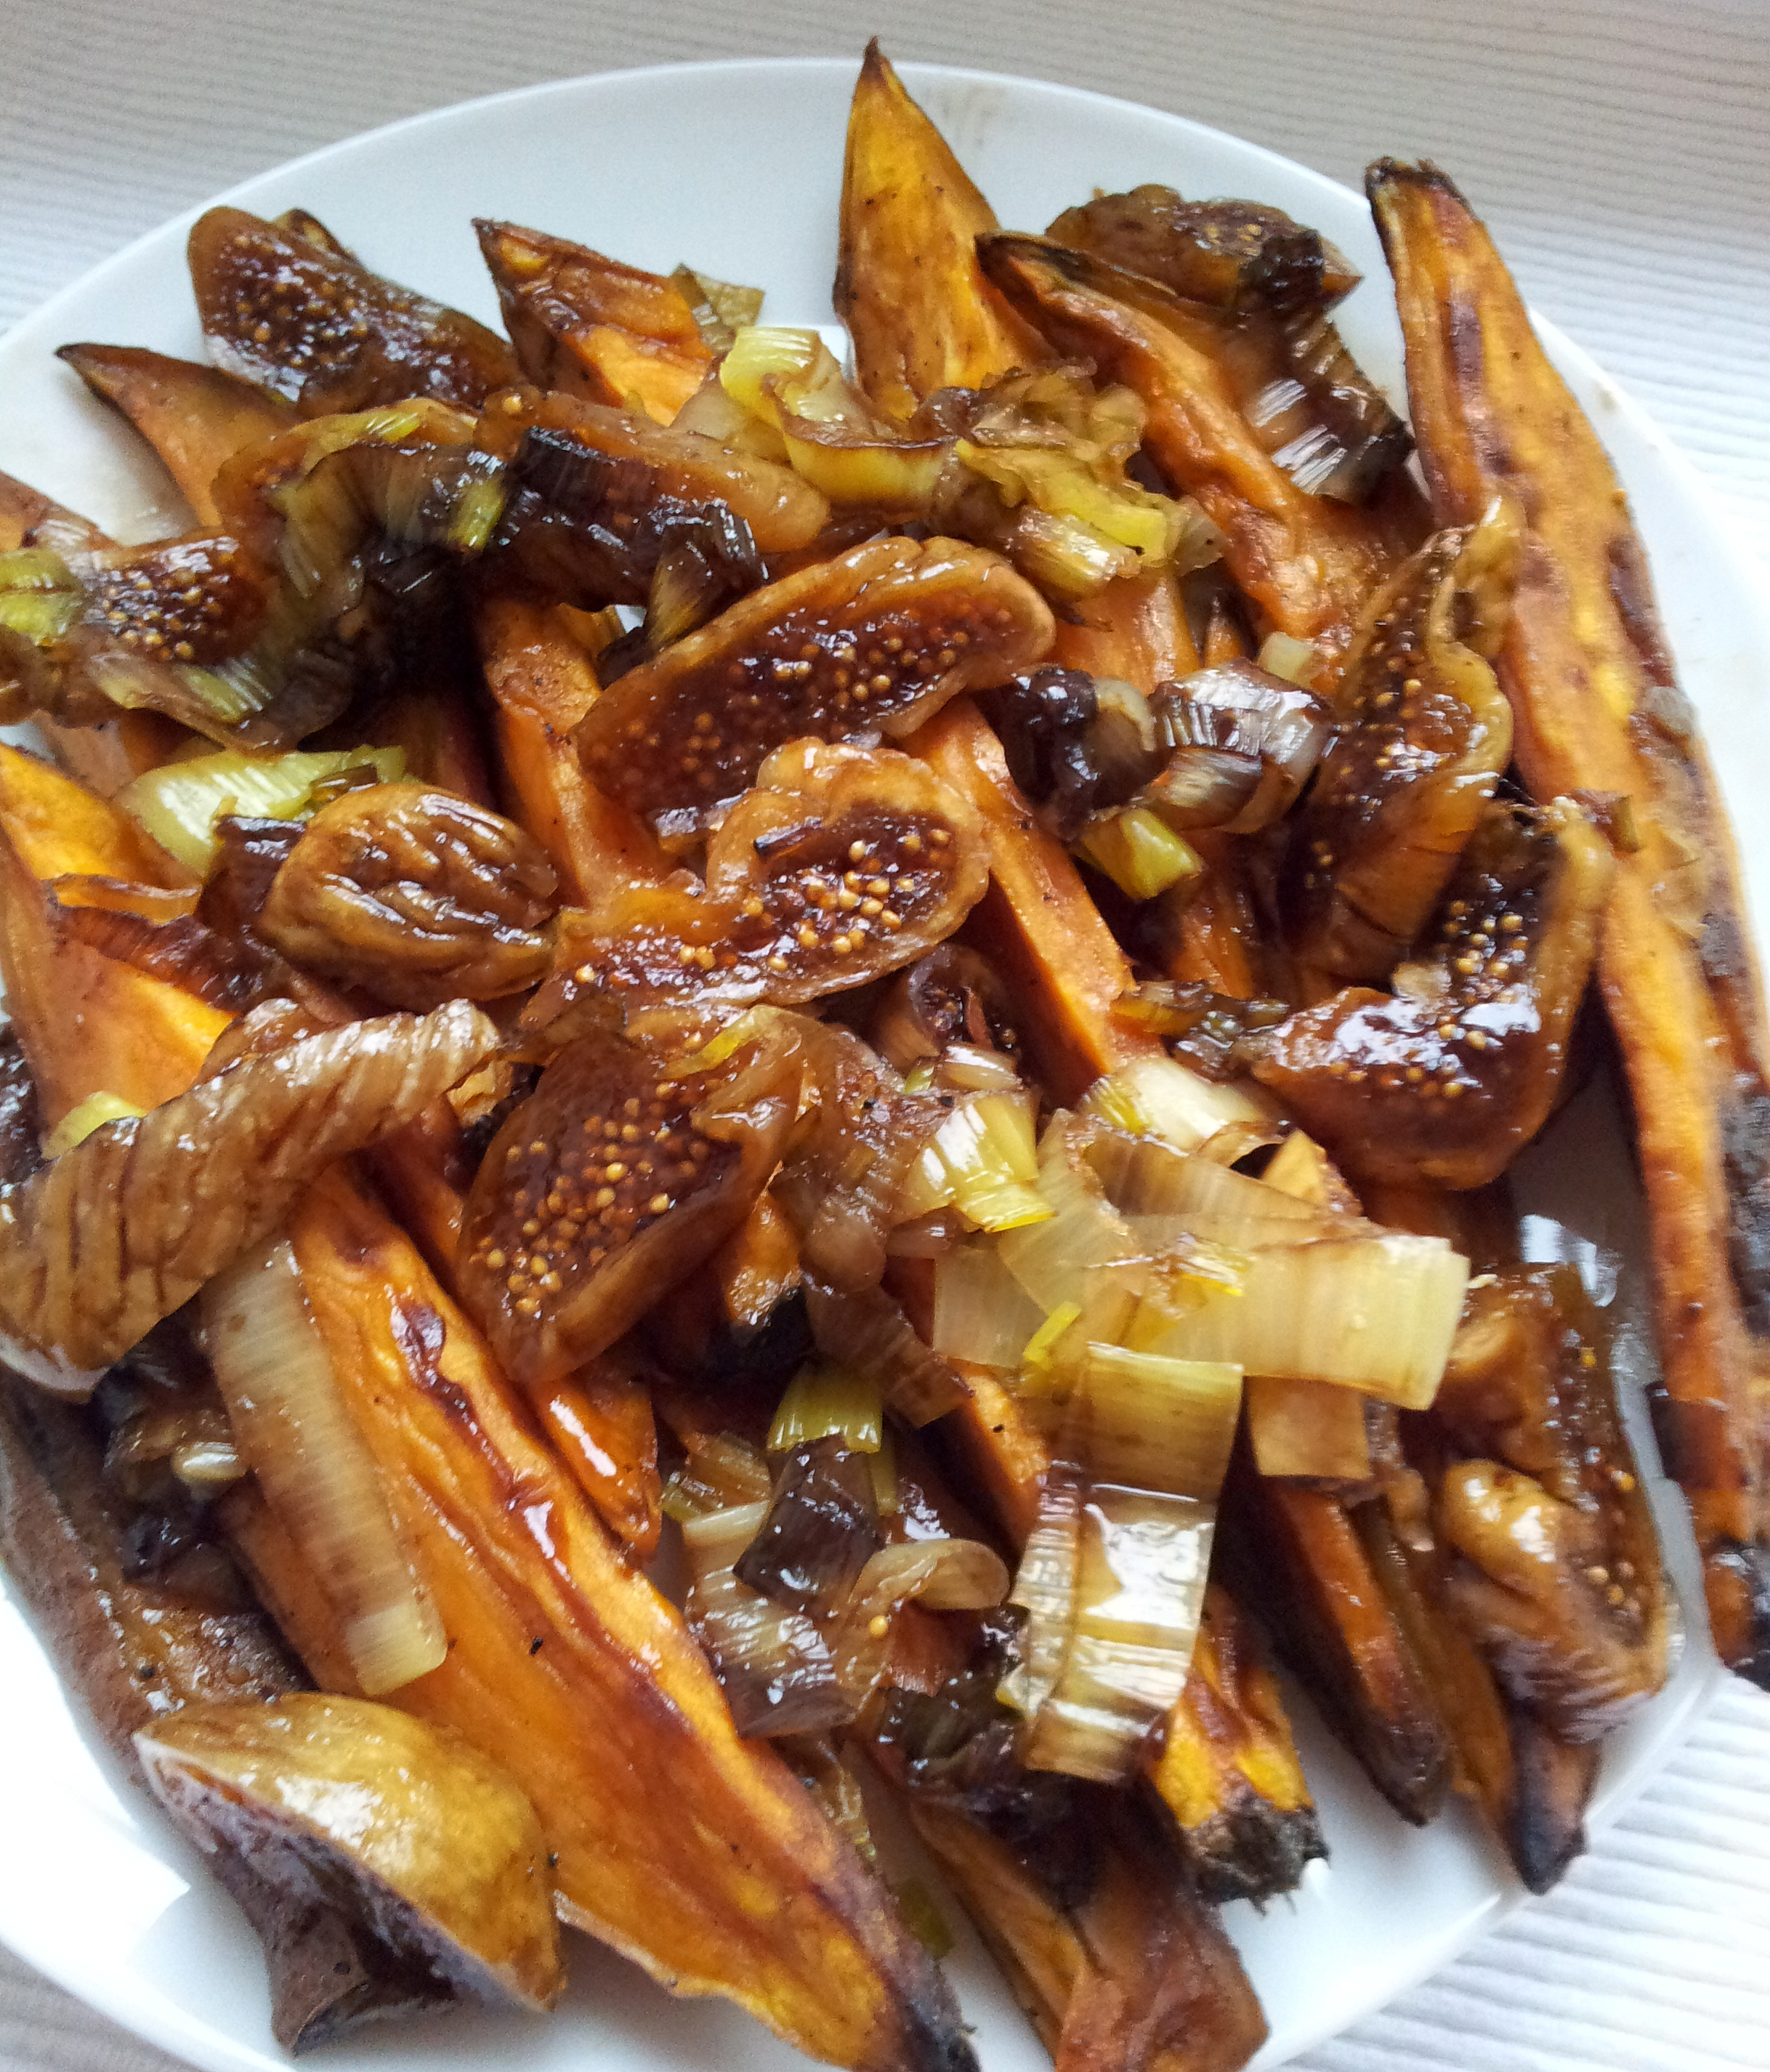 Roasted sweet potatoes and fresh figs in a reduction of balsamic